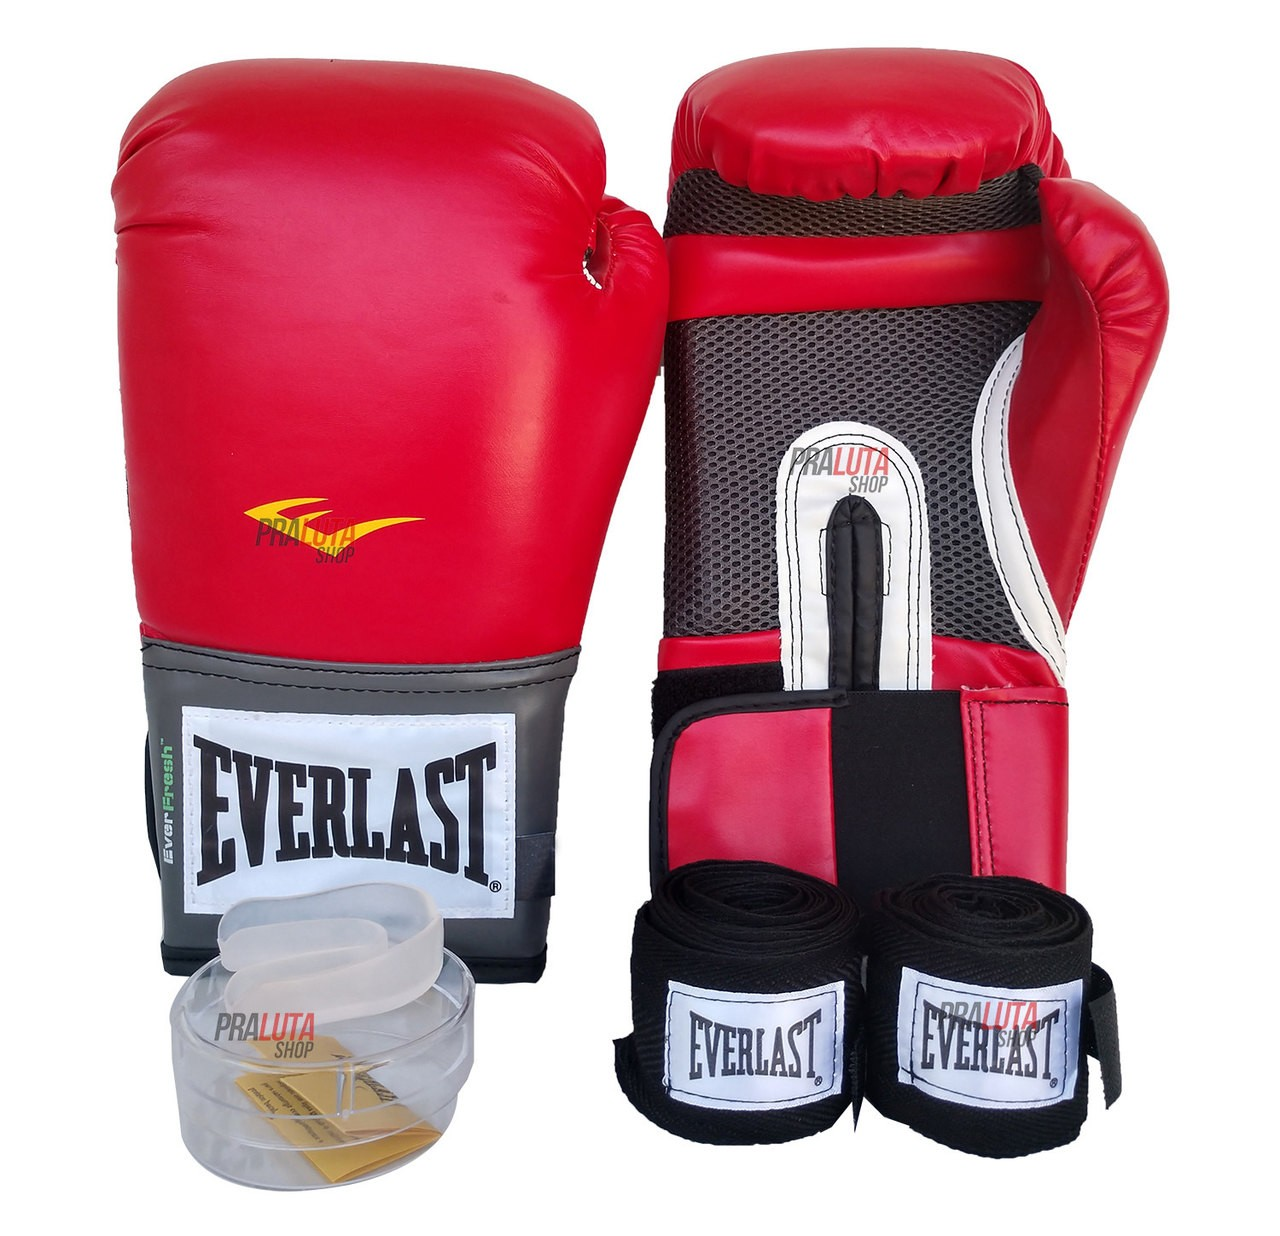 Kit de Boxe / Muay Thai 14oz - Vermelho - Training - Everlast  - PRALUTA SHOP